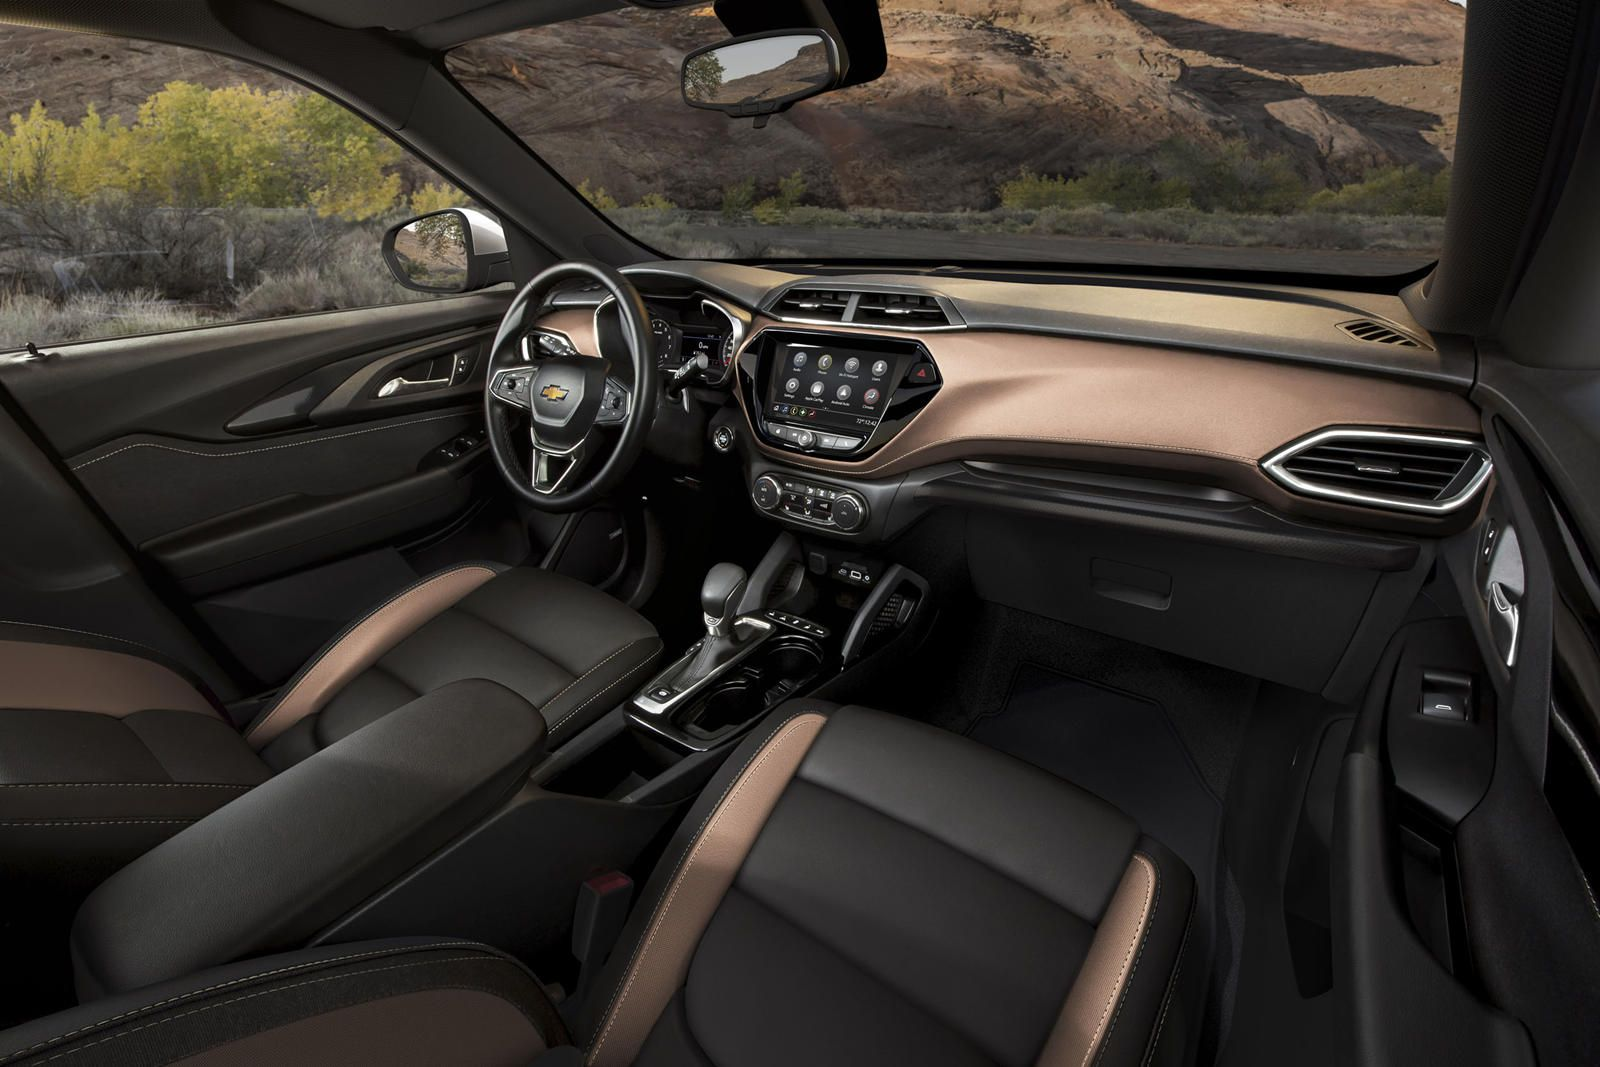 2021 Chevy Trailblazer Will Be Cheaper Than The Dirt On Its Tires Starting Under 20k The Bowtie S New Cros Chevy Trailblazer Chevrolet Trailblazer Chevrolet